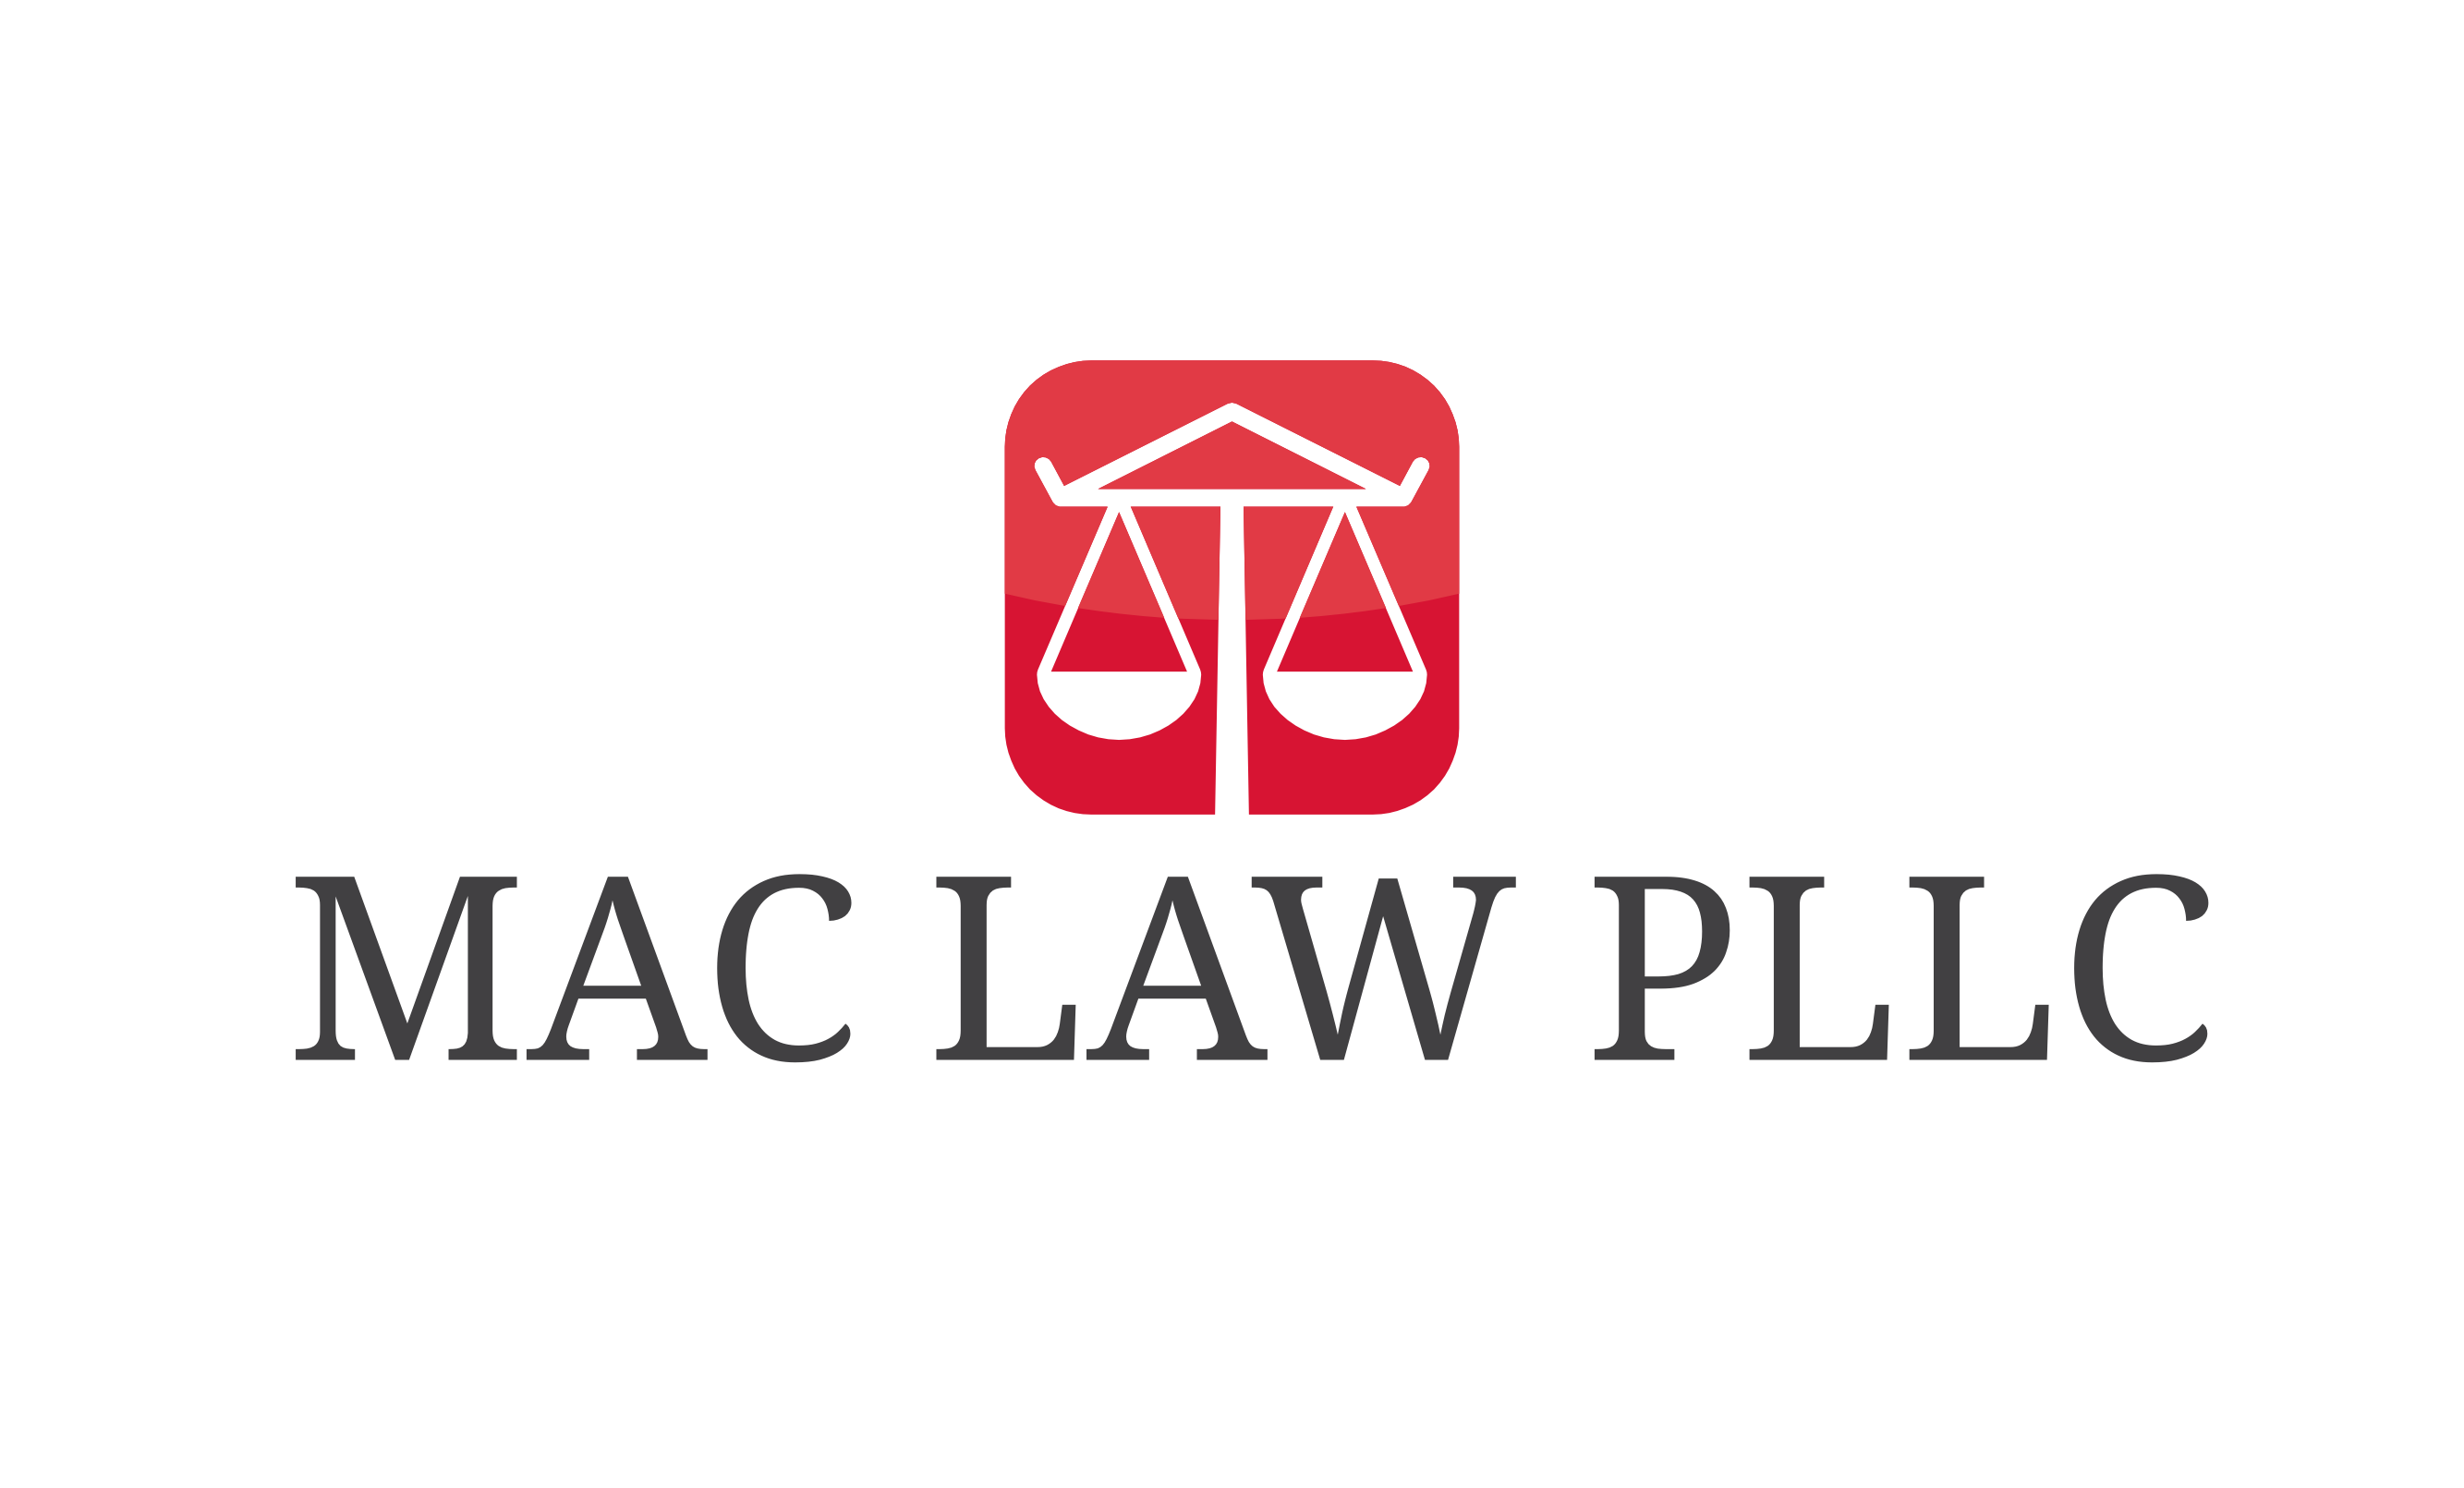 Mac Law PLLC